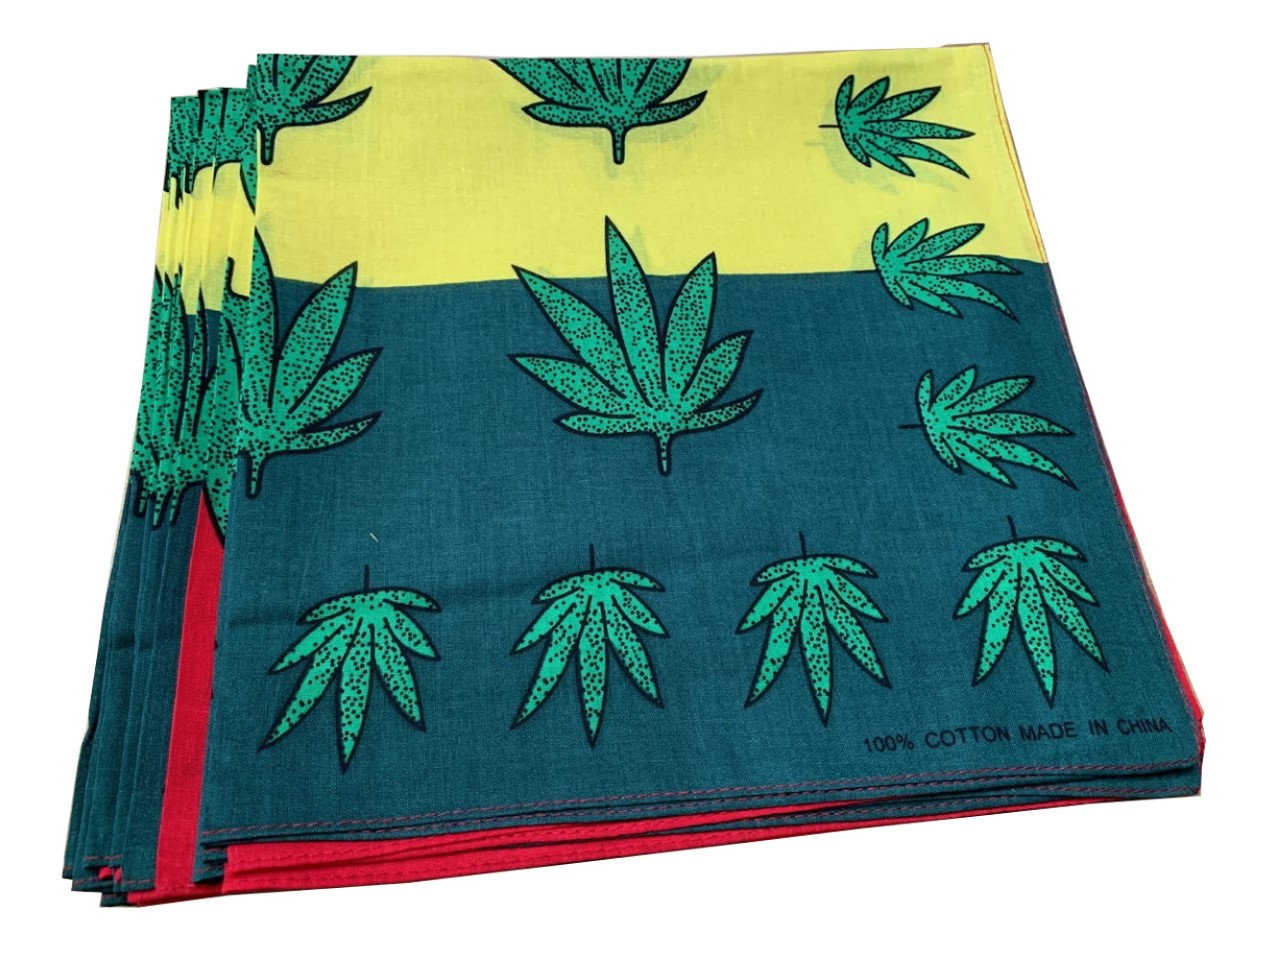 "Marijuana Bandanas Red/Yellow 12 Pack 22"" x 22"" - 100% Cotton"